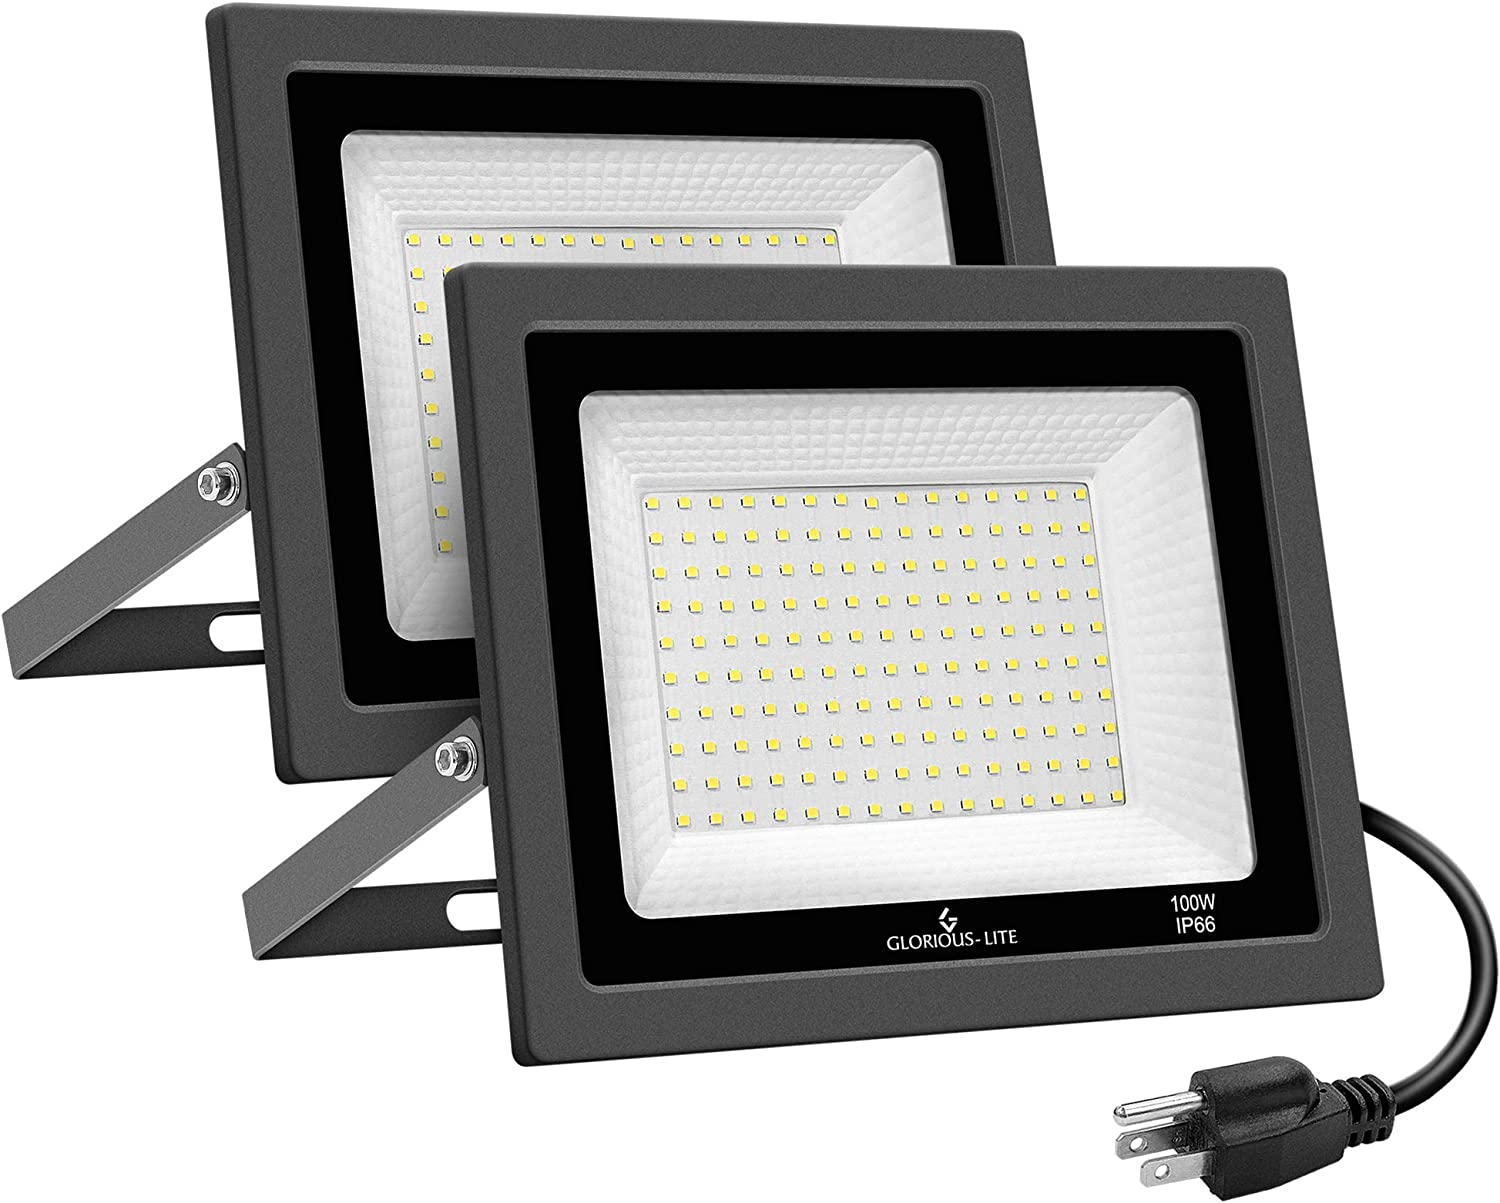 GLORIOUS-LITE 2 Pack 100W LED Flood Light Outdoor, 10000LM Super Bright Work Light with Plug, 5000K Daylight White, IP66 Waterproof Outdoor Floodlights for Yard, Garden, Playground